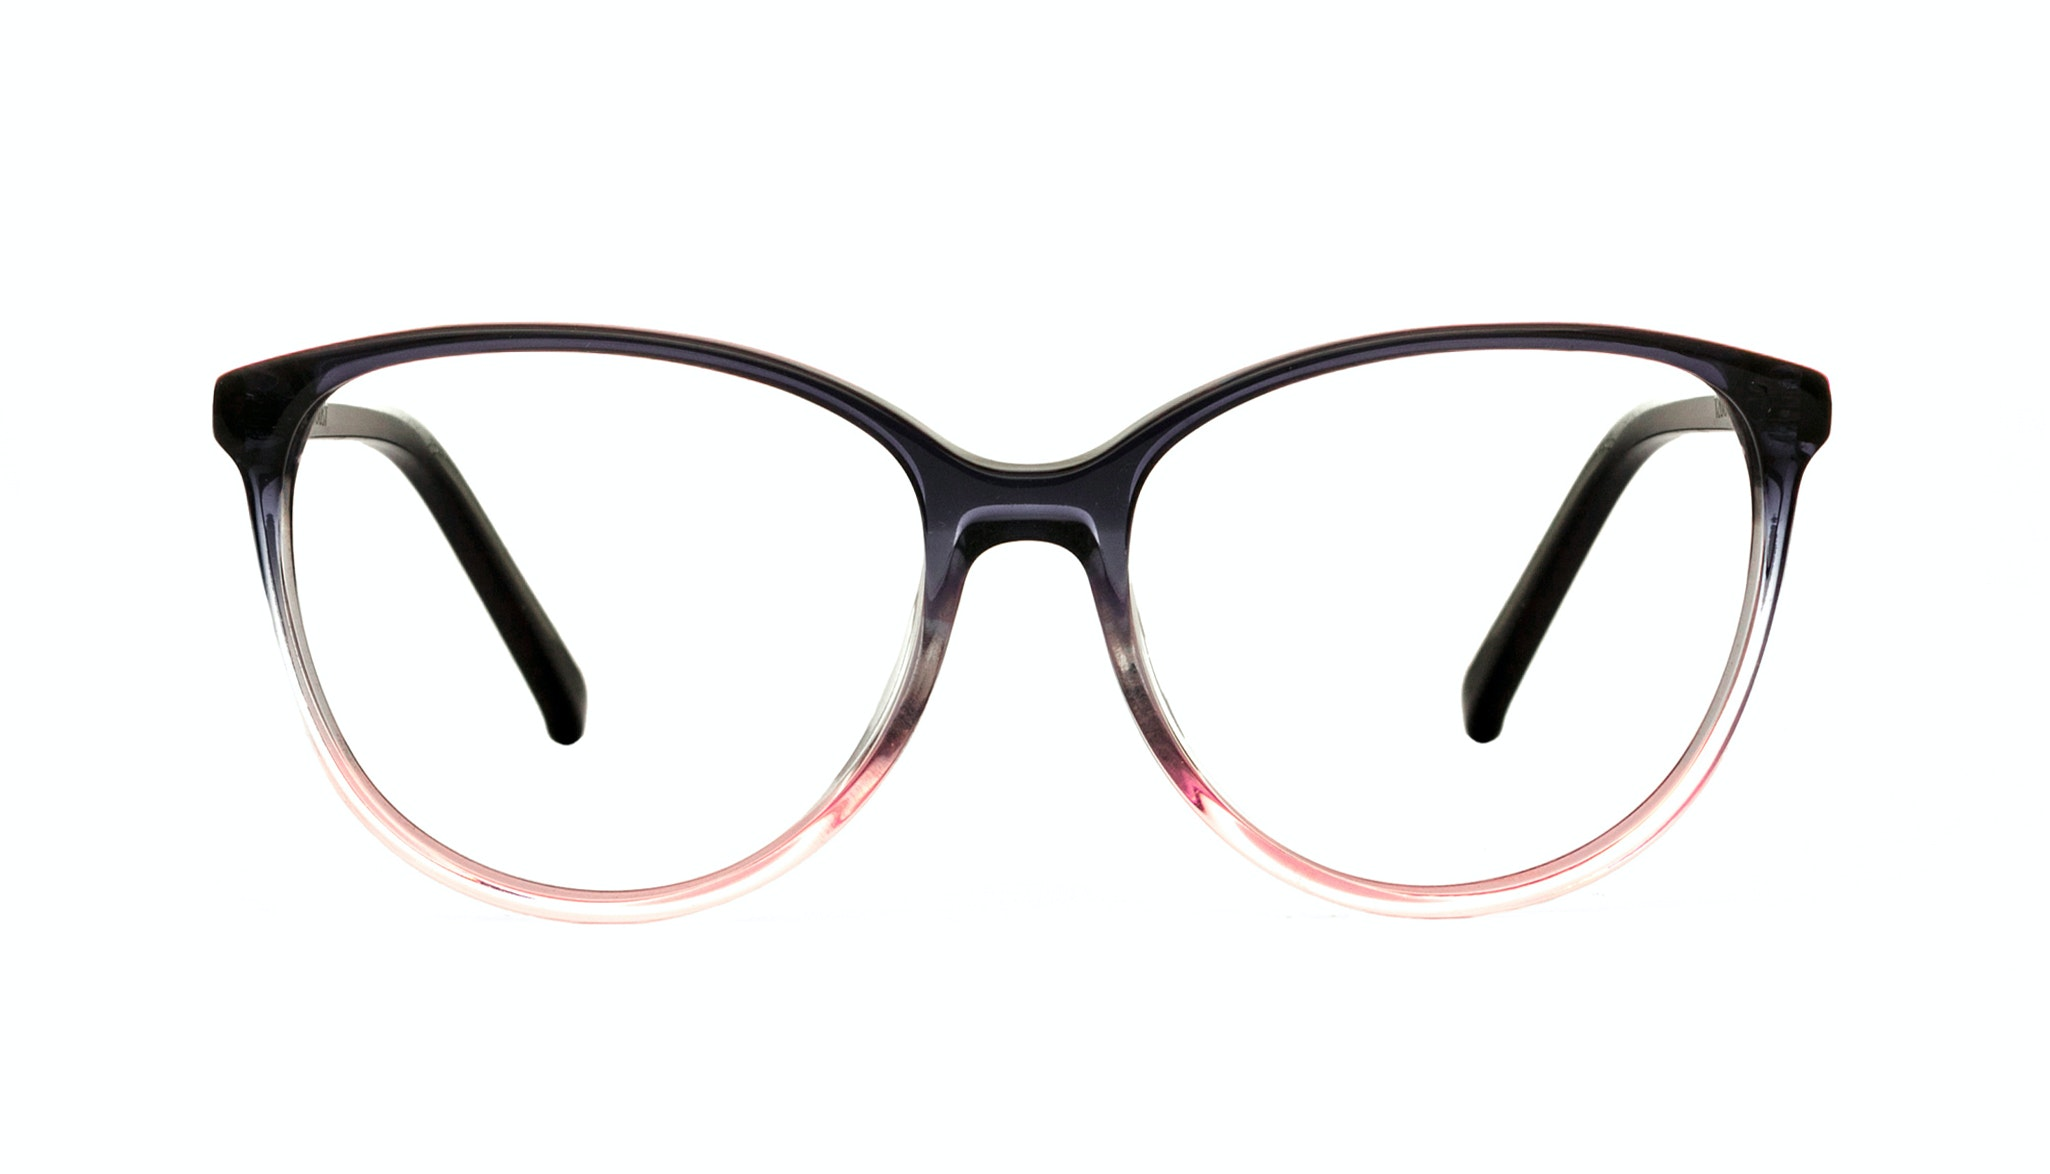 Affordable Fashion Glasses Cat Eye Round Eyeglasses Women Imagine Pink Dust Front